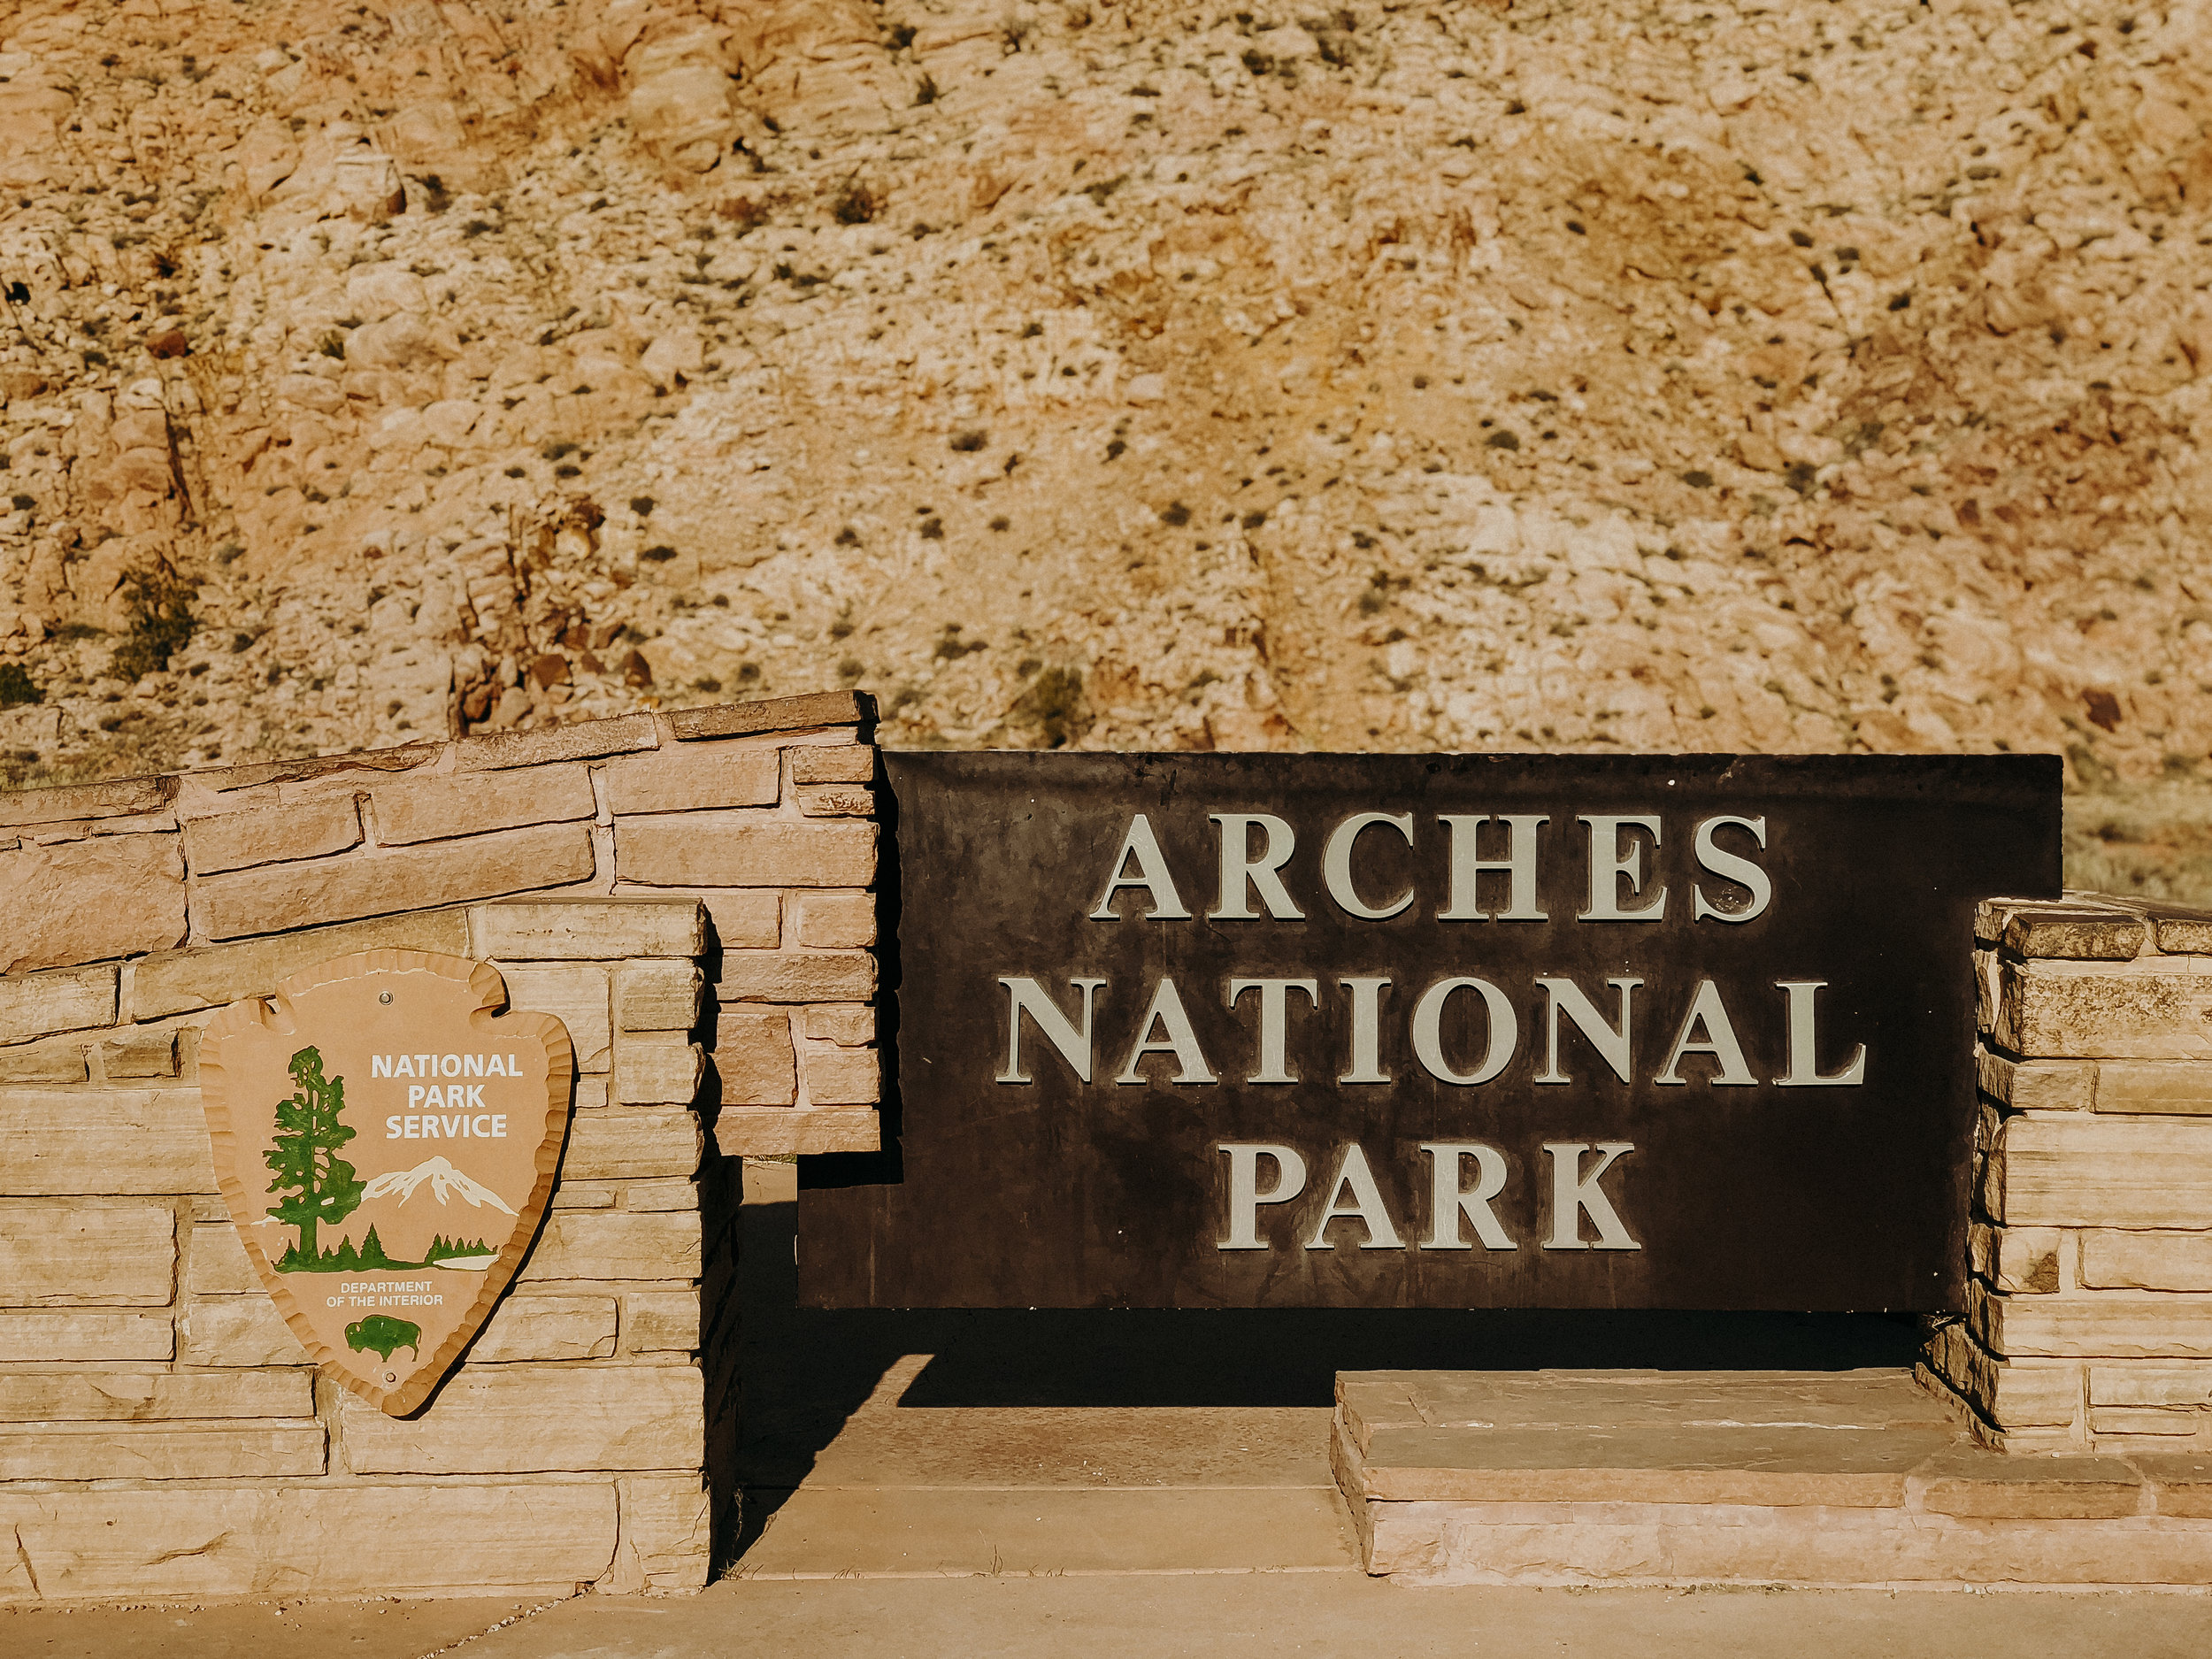 visit-arches-national-park-what-to-do-23.jpg